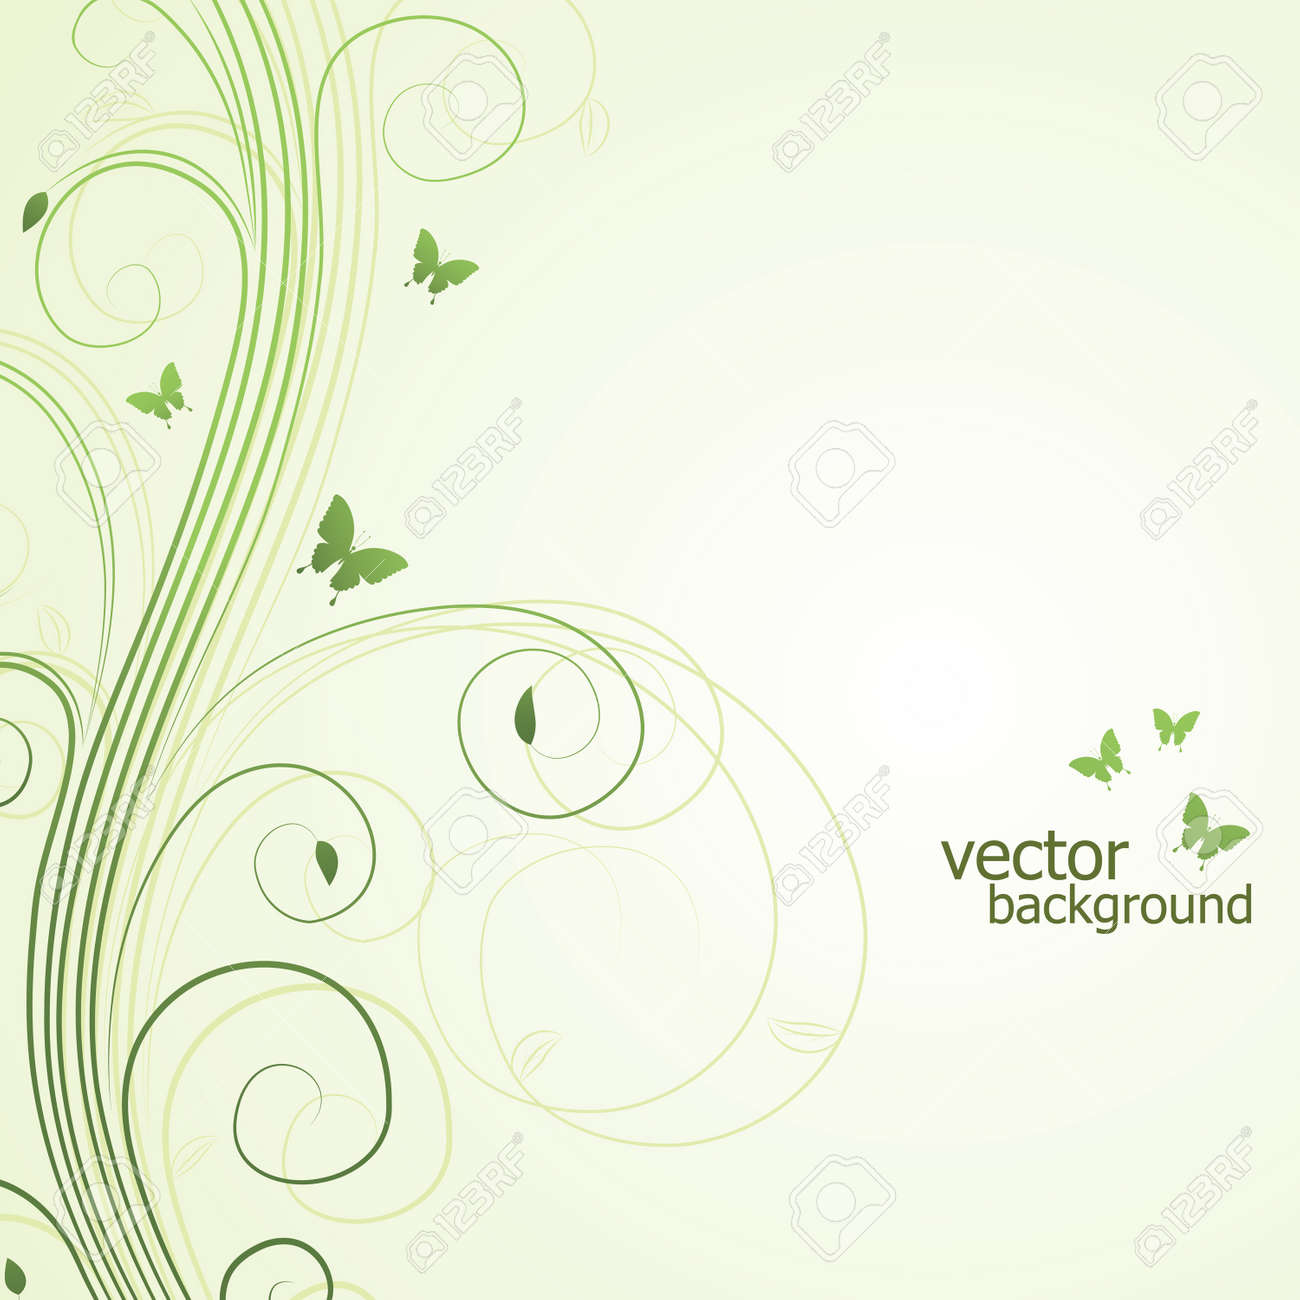 Abstract floral background with butterfly. illustration. Stock Vector - 8710850